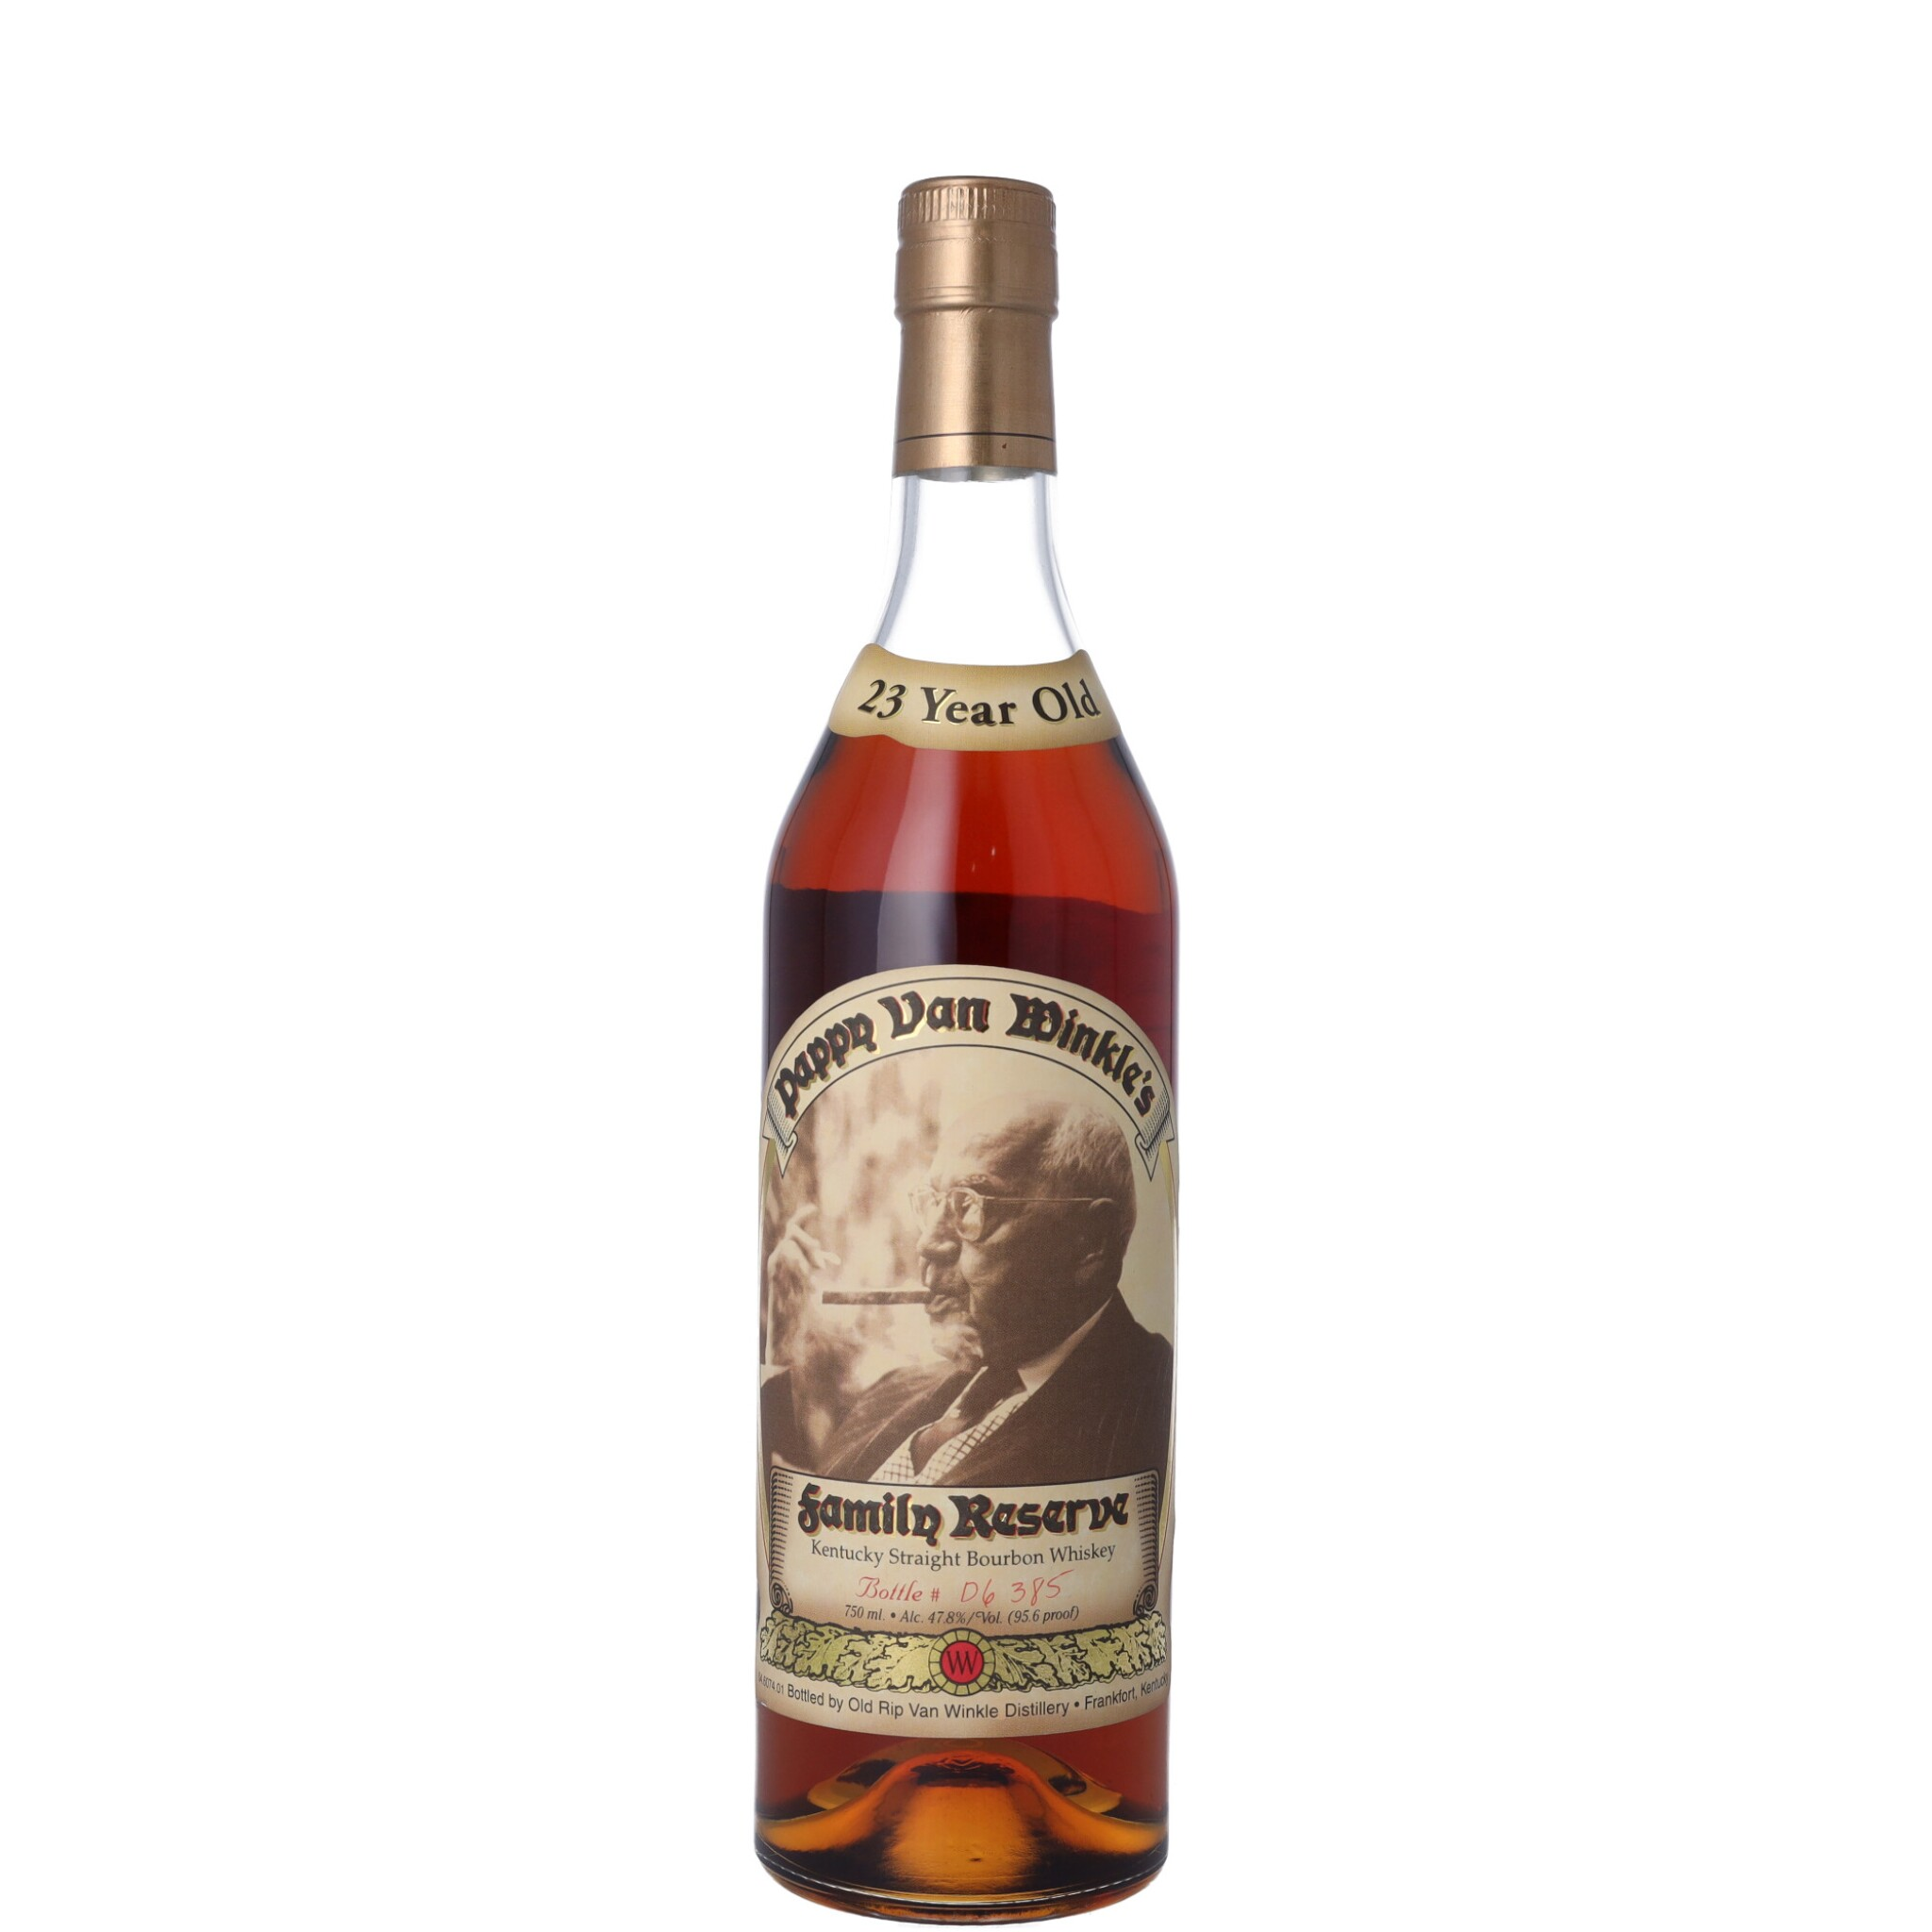 View full screen - View 1 of Lot 174. Pappy Van Winkle's 23 Year Old Family Reserve 95.6 proof NV (1 BT75).